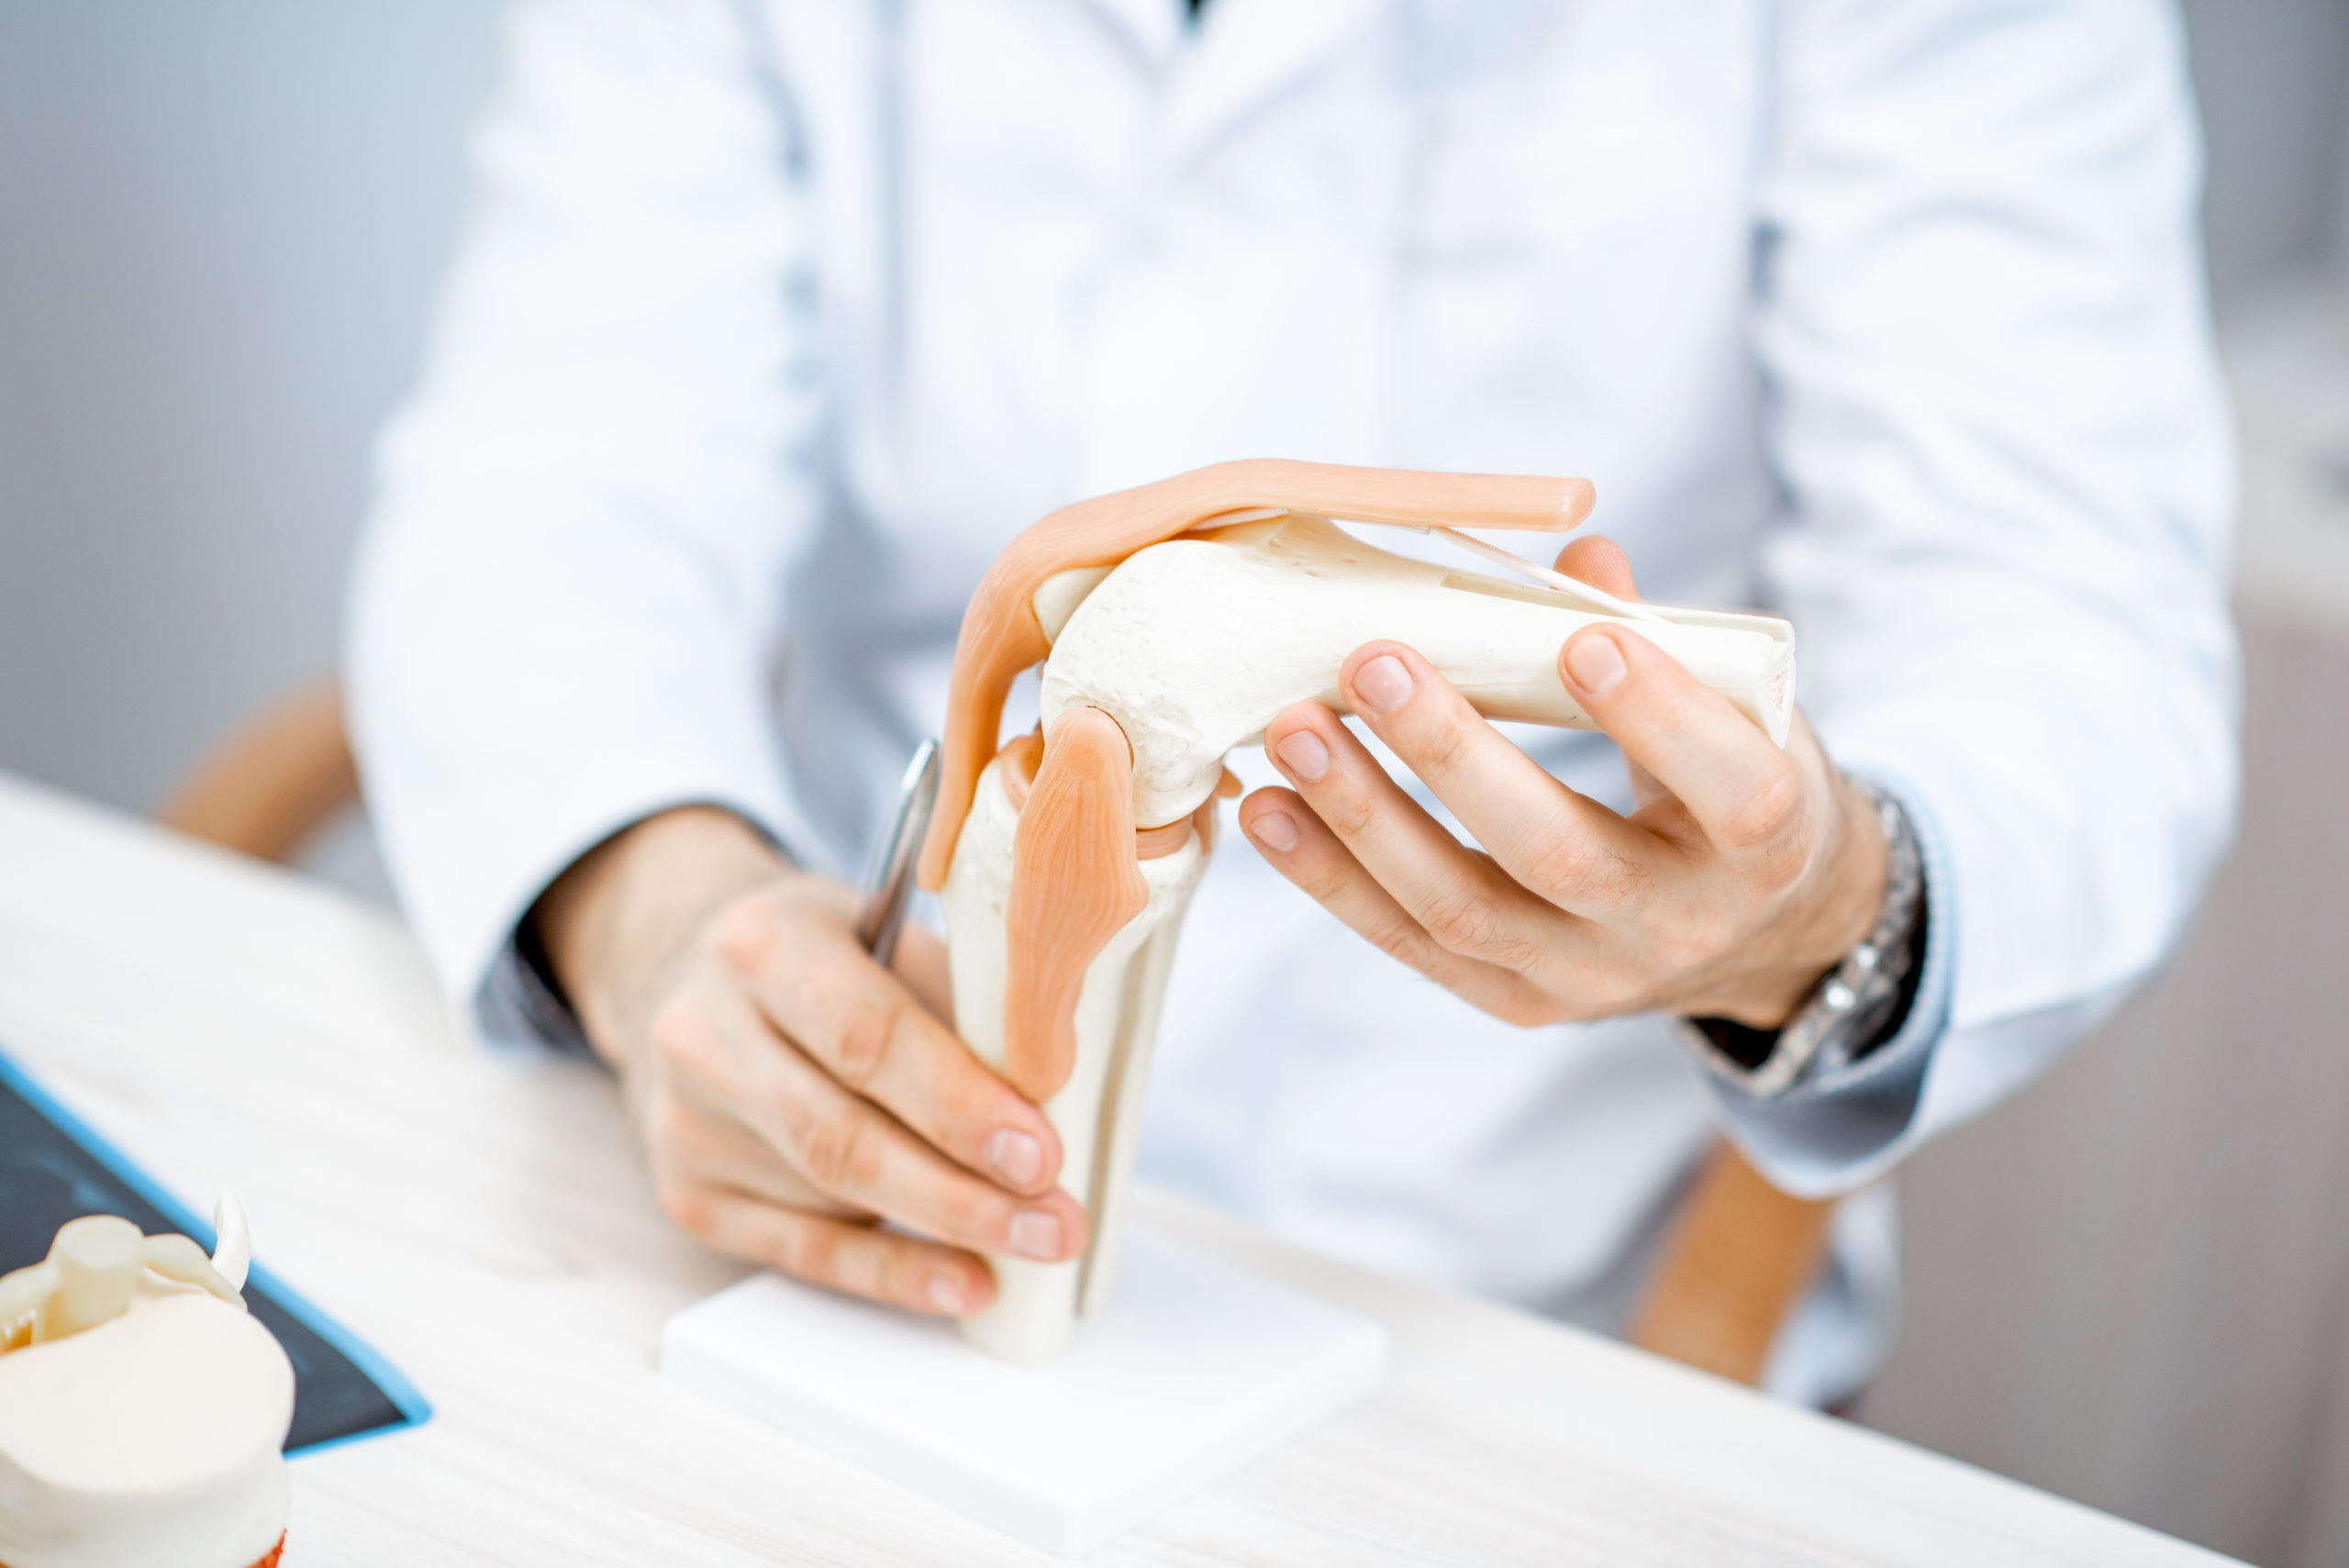 Therapist showing knee joint model